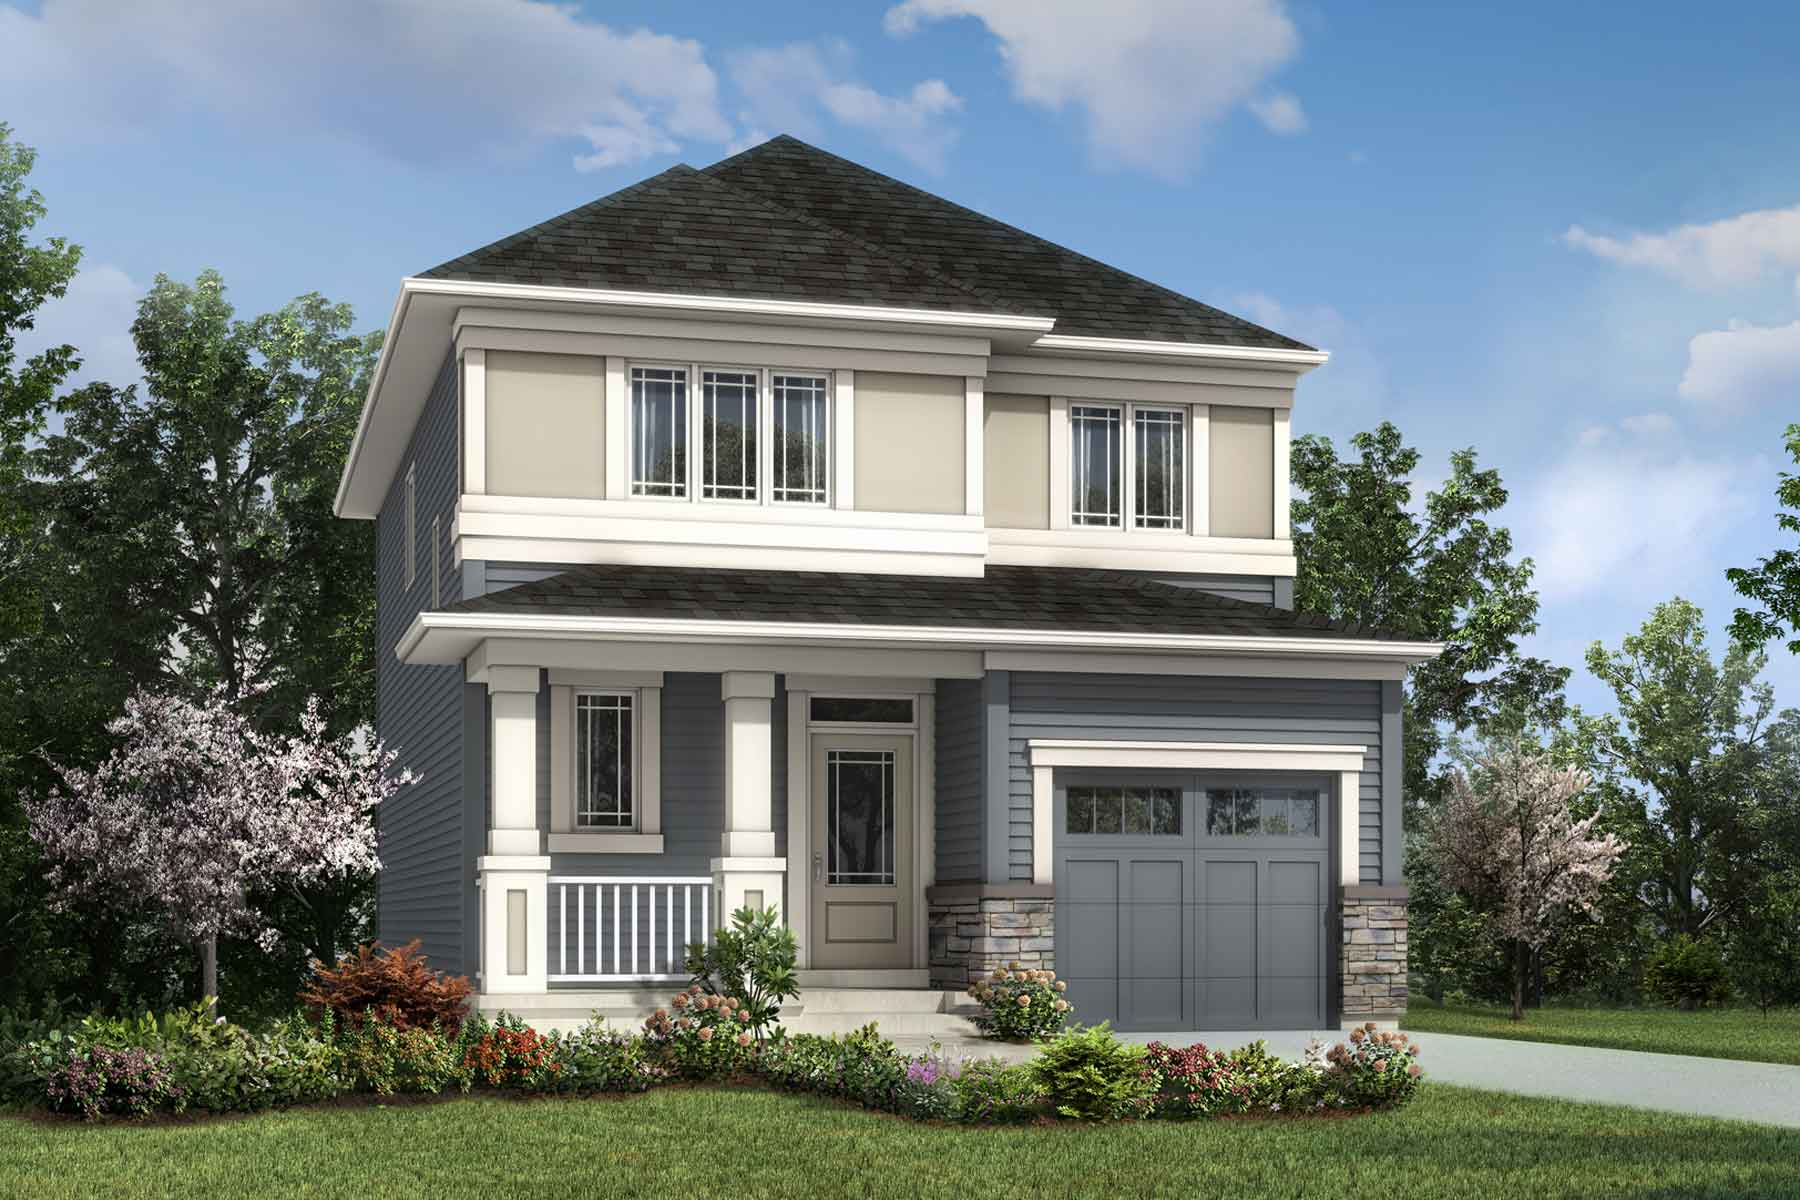 Hudson Plan elevationprairie_southwinds_hudson at Southwinds in Airdrie Alberta by Mattamy Homes